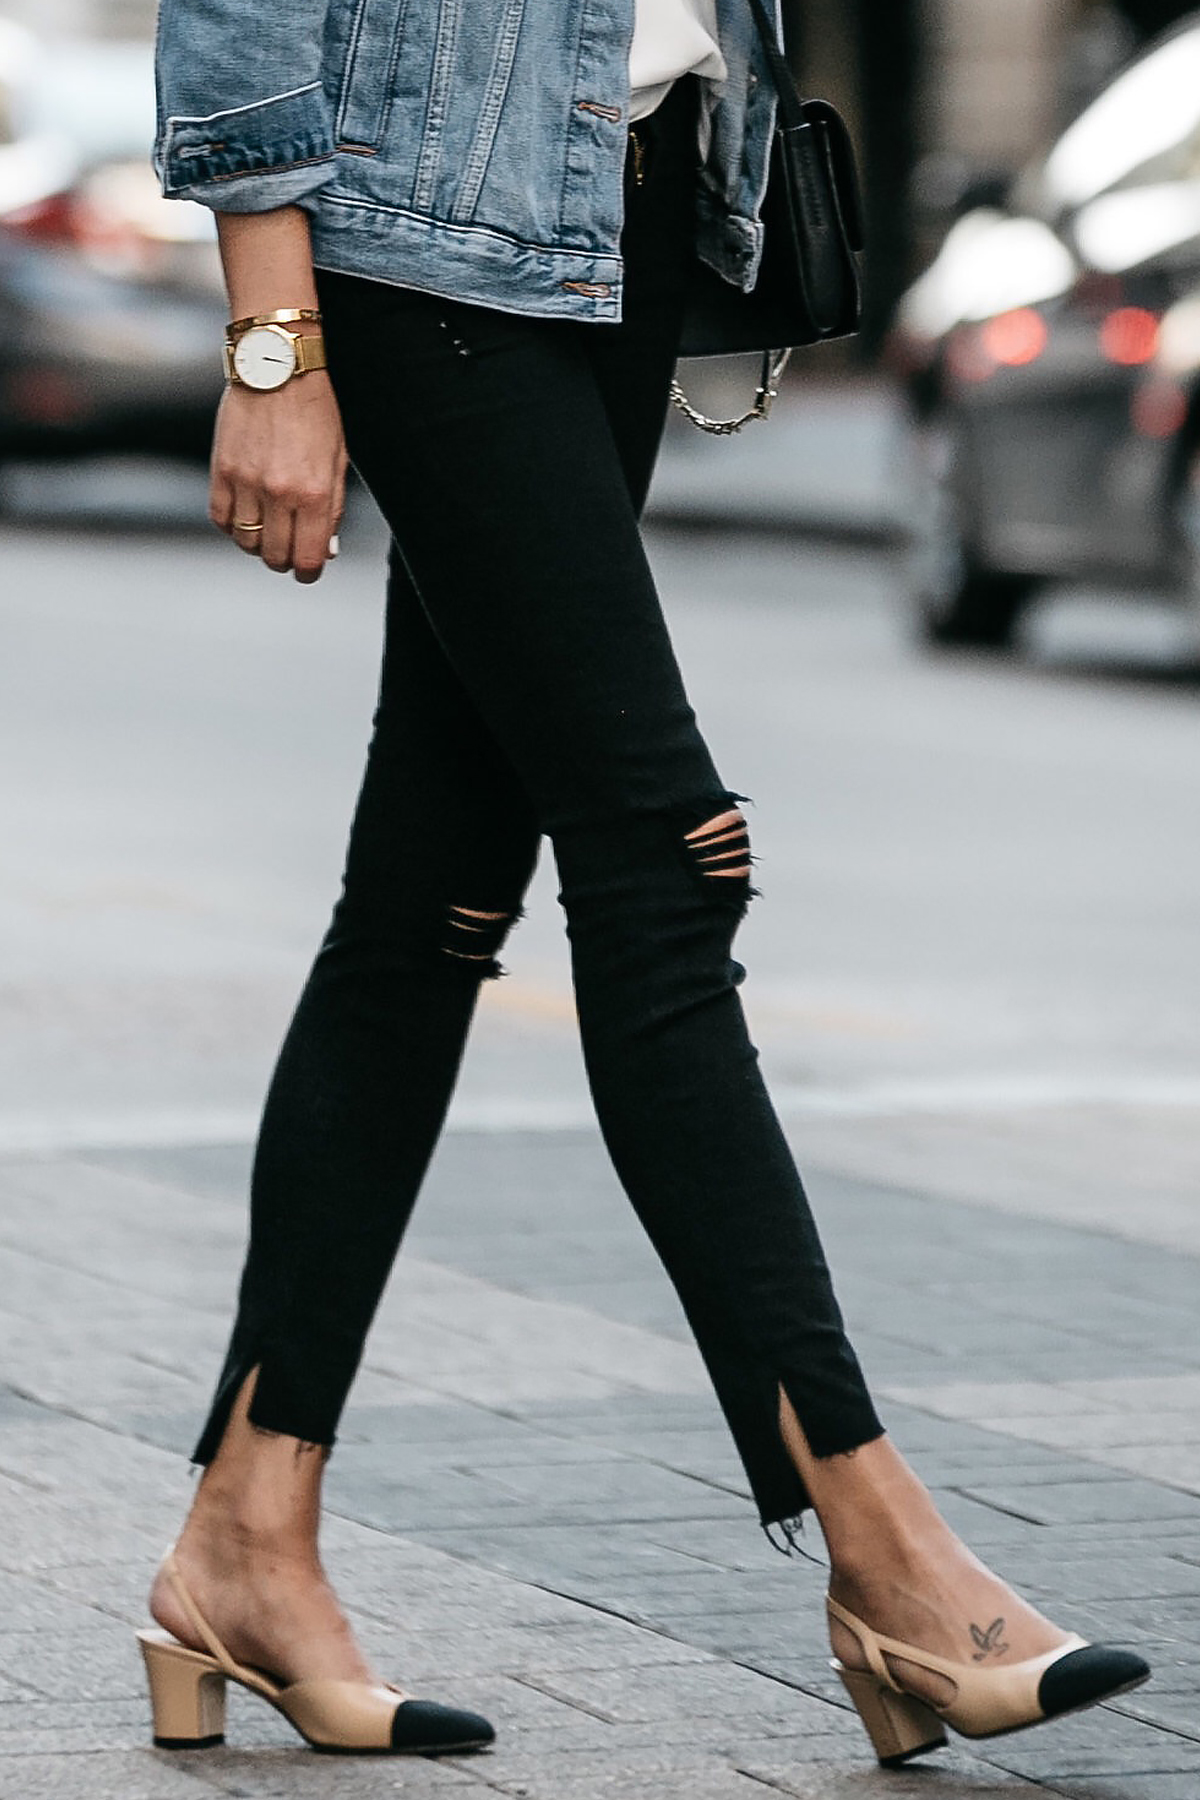 Frame Black Ripped Skinny Jeans Chanel Slingbacks Fashion Jackson Dallas Blogger Fashion Blogger Street Style